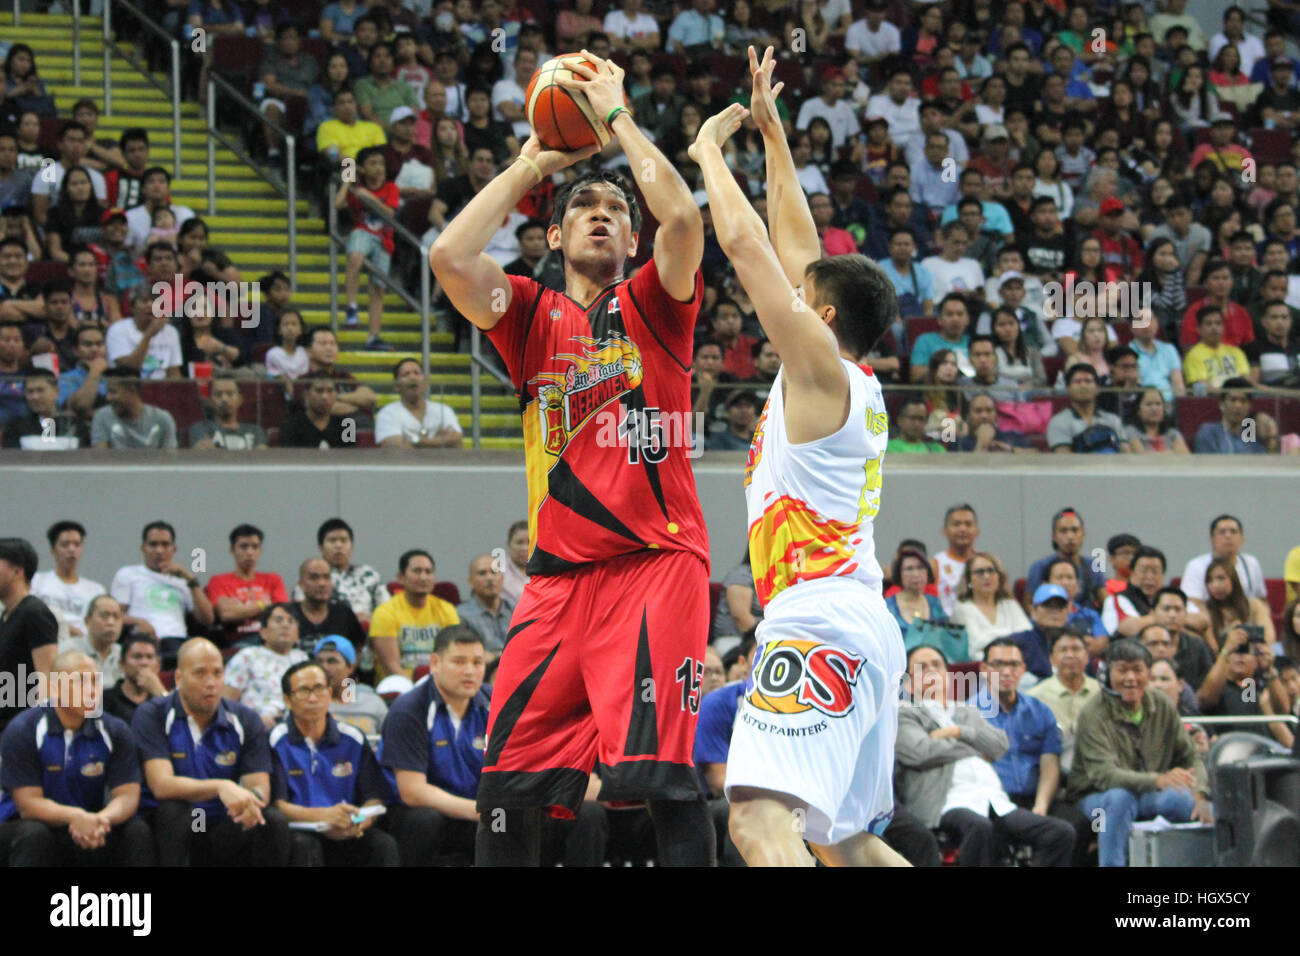 Junemar Fajardo of San Miguel takes a jumpshot over defender Jewel Ponferrada of Rain or Shine (Photo by Dennis - Stock Image